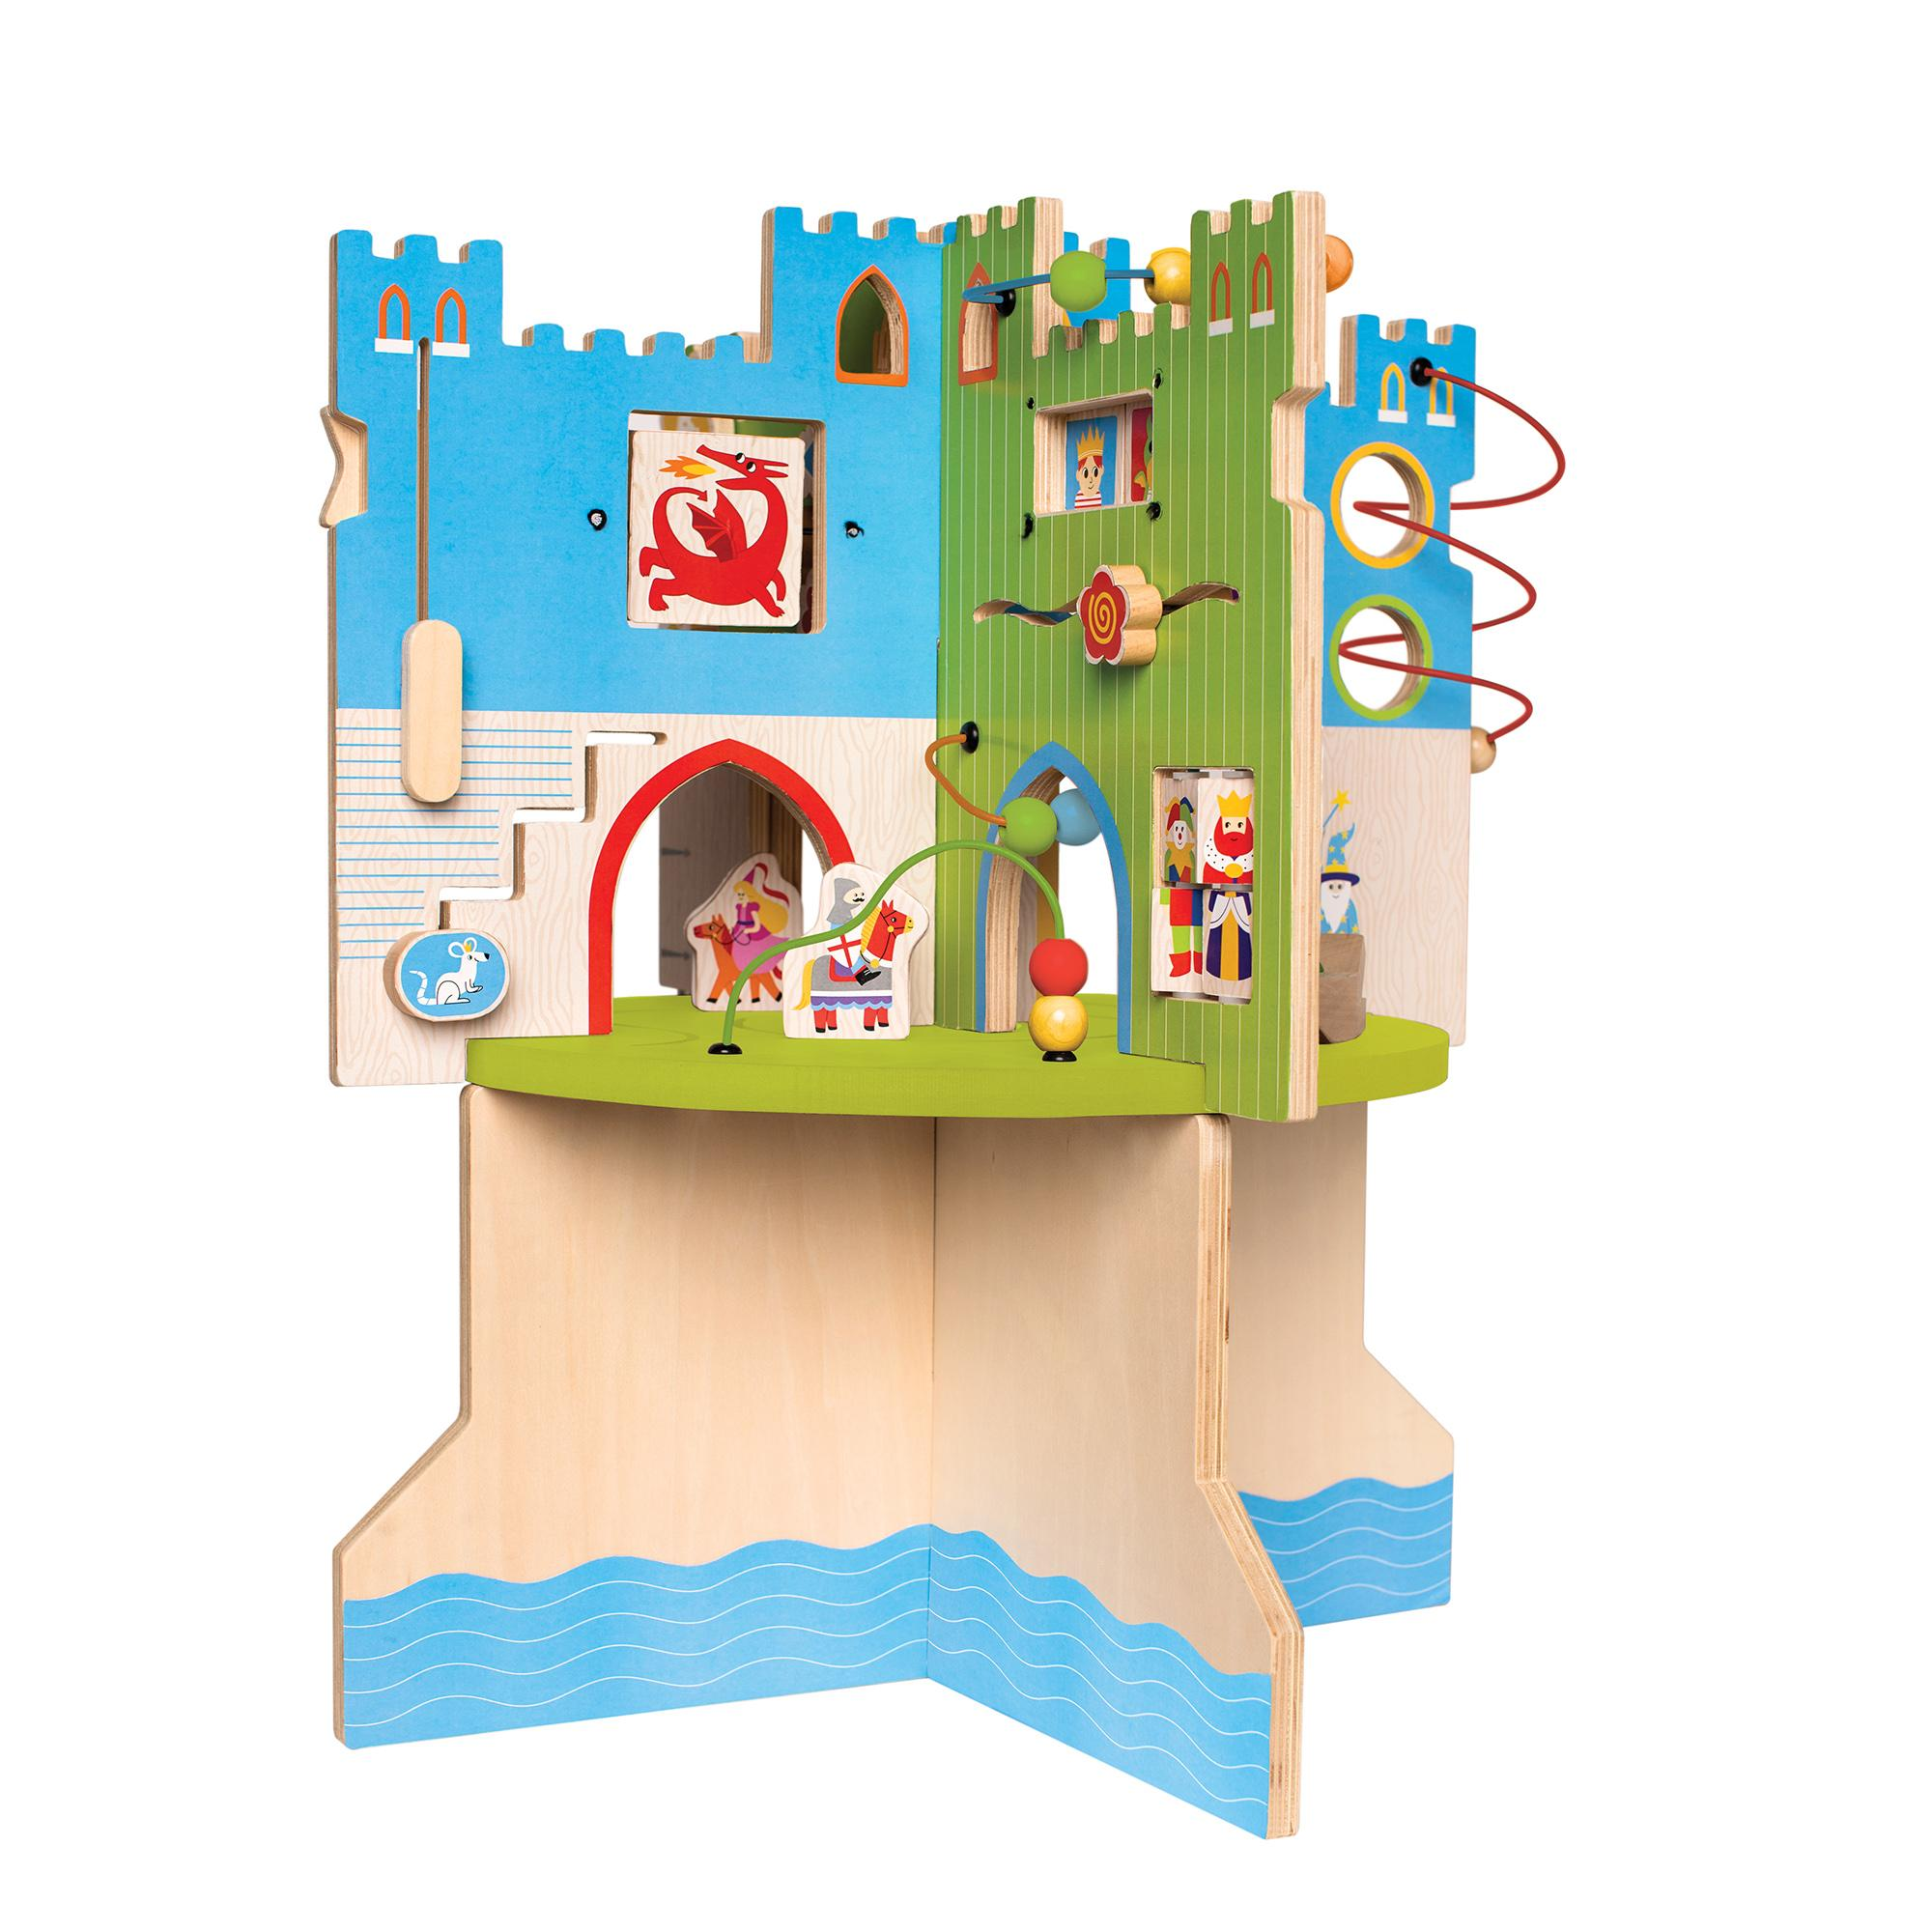 Toy Castles For Toddler Boys : Manhattan toy storybook castle wooden toddler activity